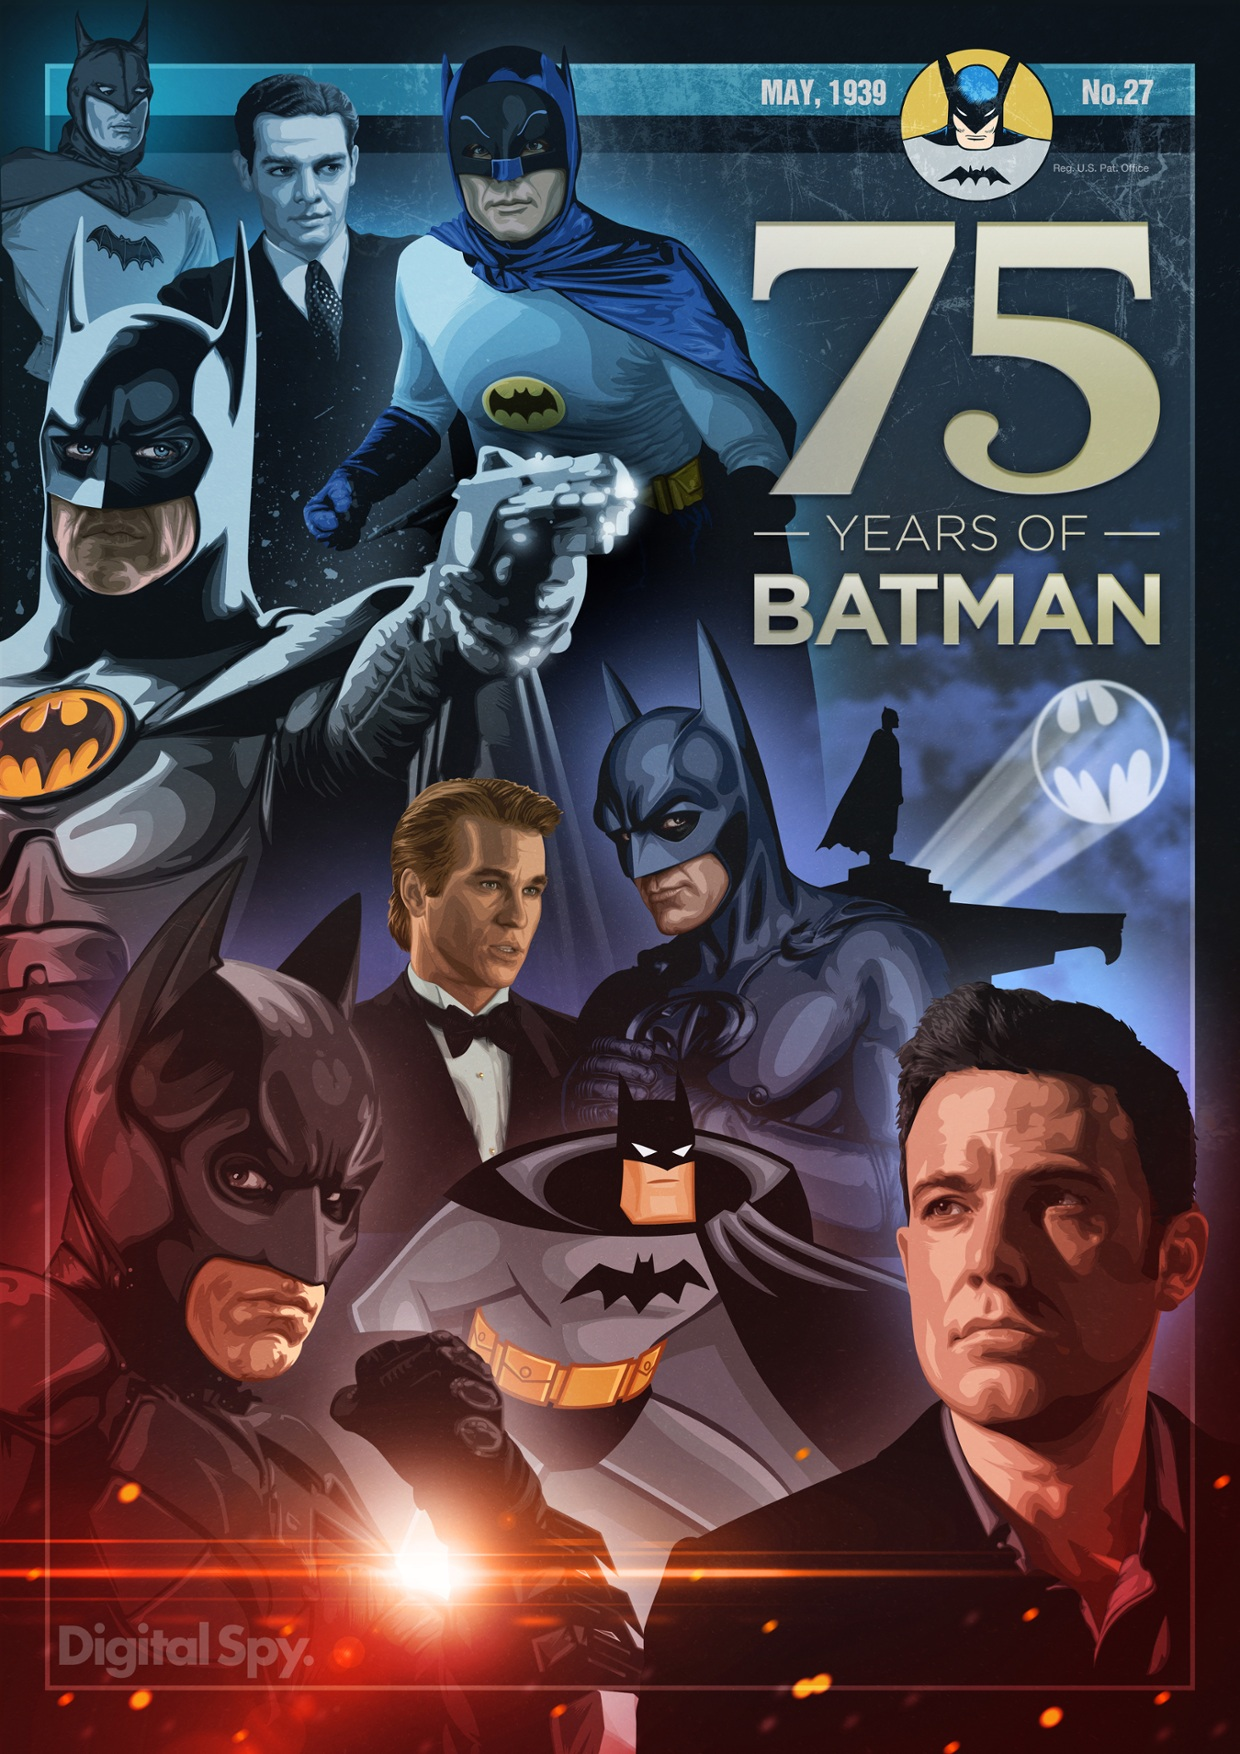 Batman 75th anniversary: The men behind the mask